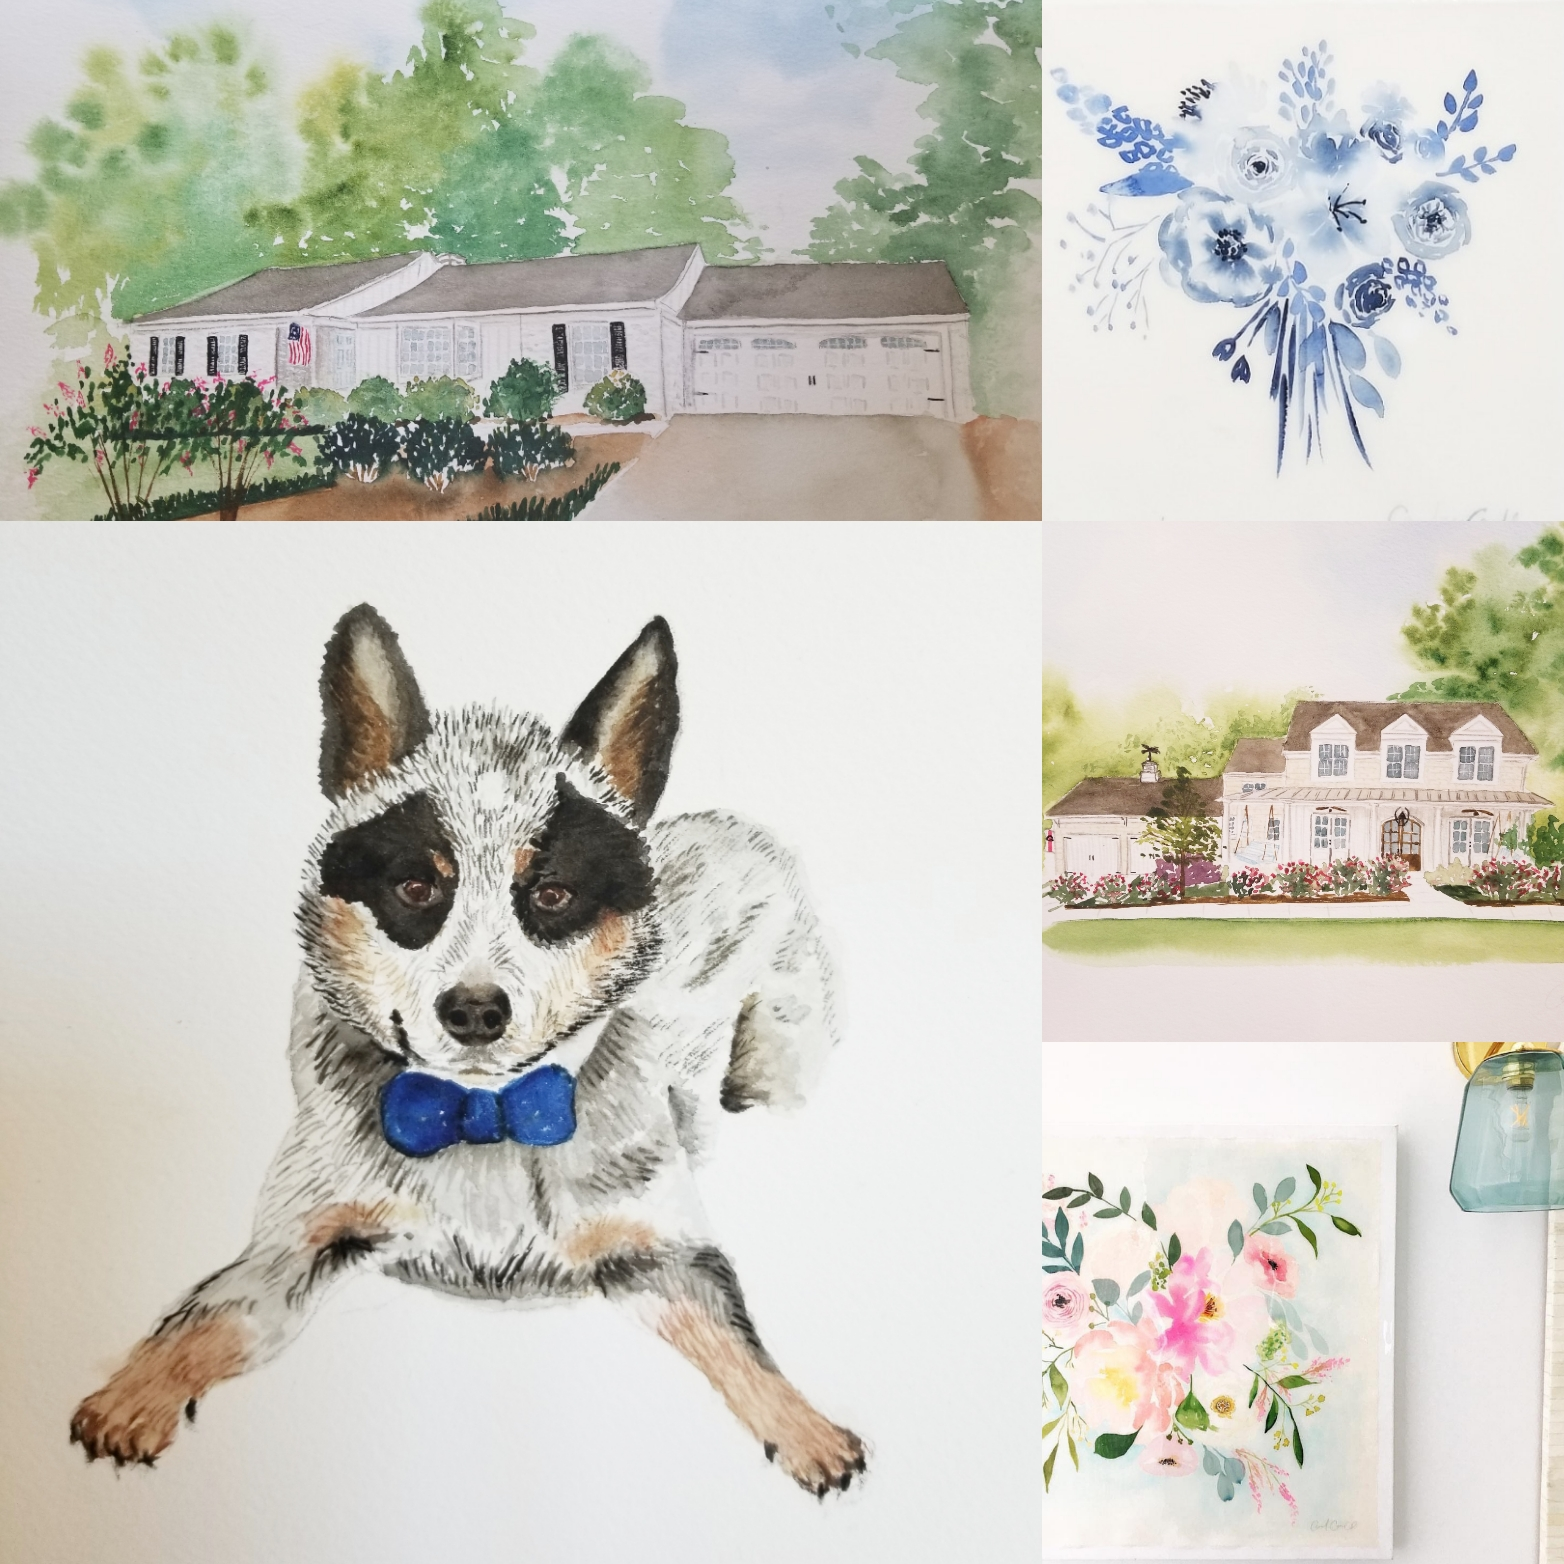 "Watercolors on paper - I offer two basic sizes of watercolor commissions 9x12"" and 11x14"" options which fit in most standard frames. Custom sizes are available as well. Pets, bouquets, homes and wedding venues all make great subject matter.To begin, I will ask that you share a few images of the location, home, etc. It is best to include multiple views/ angles as some work better than others. Point out any specific special features you would like to include. Once plans are finalized, we will discuss the completion time. All watercolor pieces are paid for up front and include free shipping."